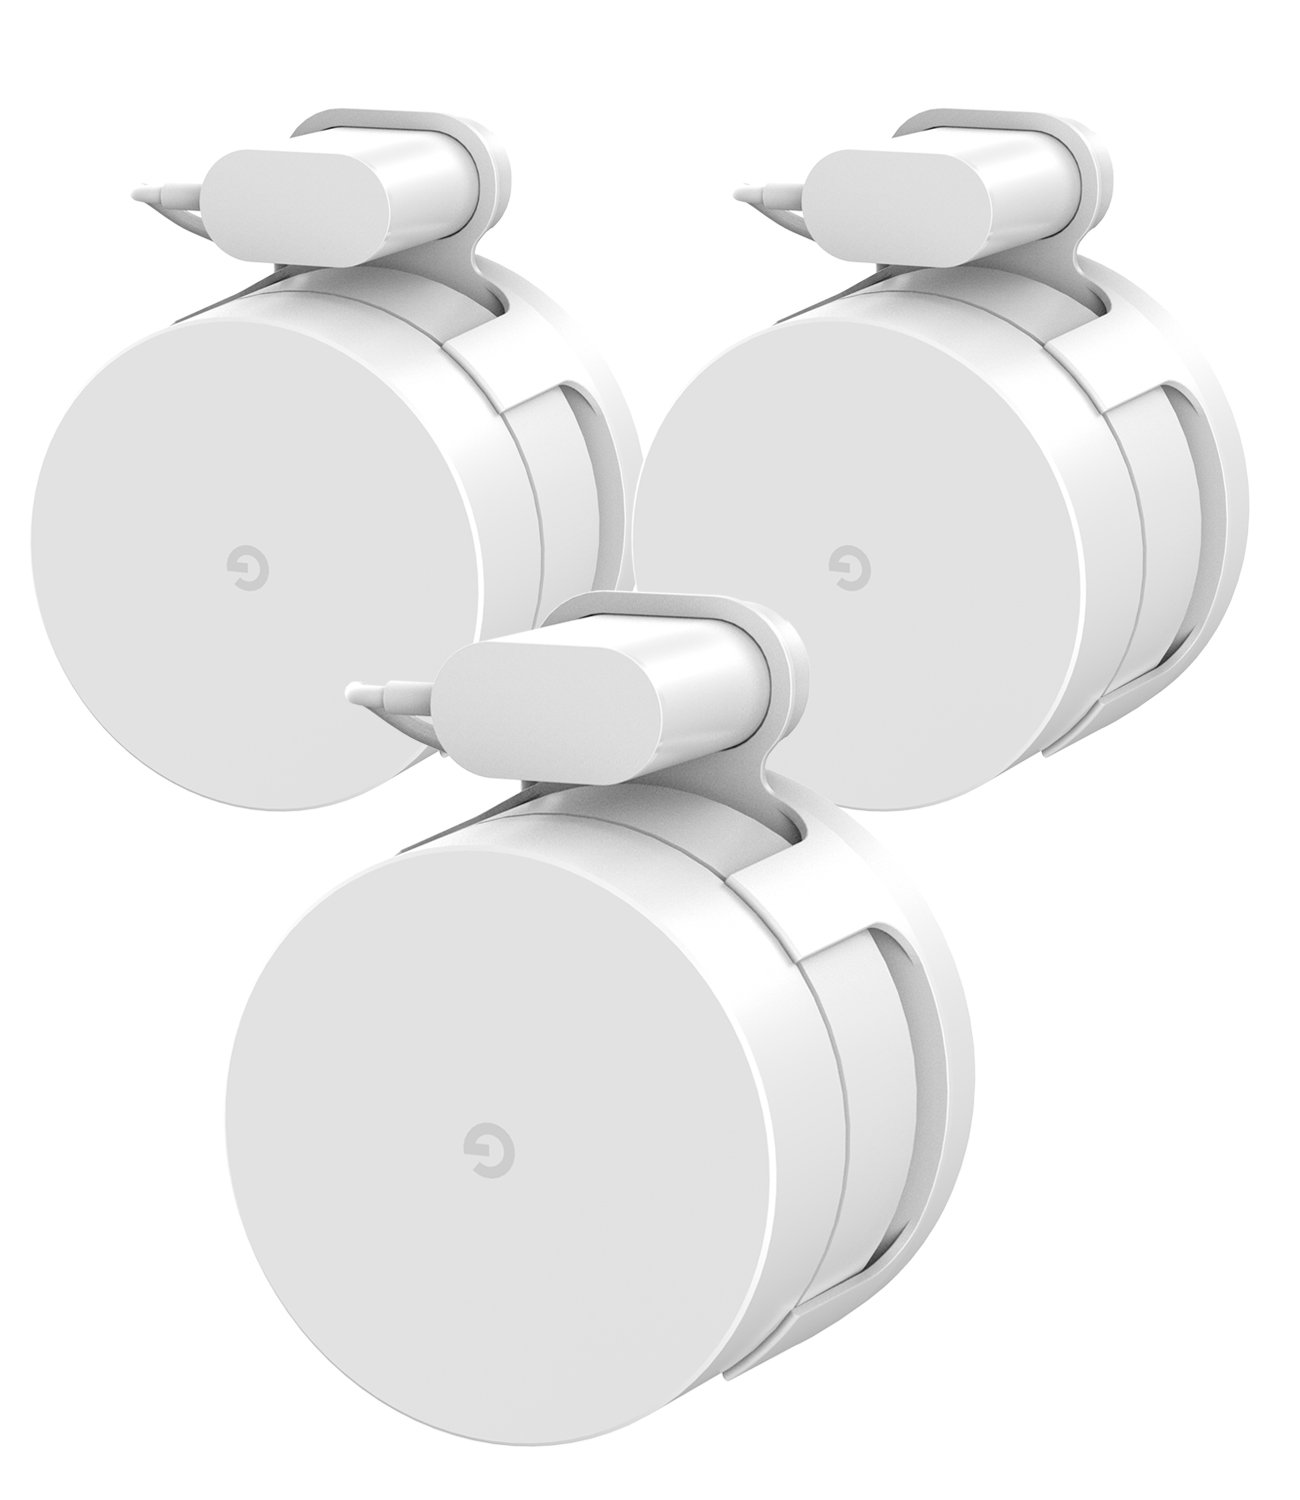 Google WiFi Wall Mount Bracket Holder, Basstop Simplest Bracket Stand for Google WiFi Router and Beacons (No Messy Screws) (White (3 Pack))